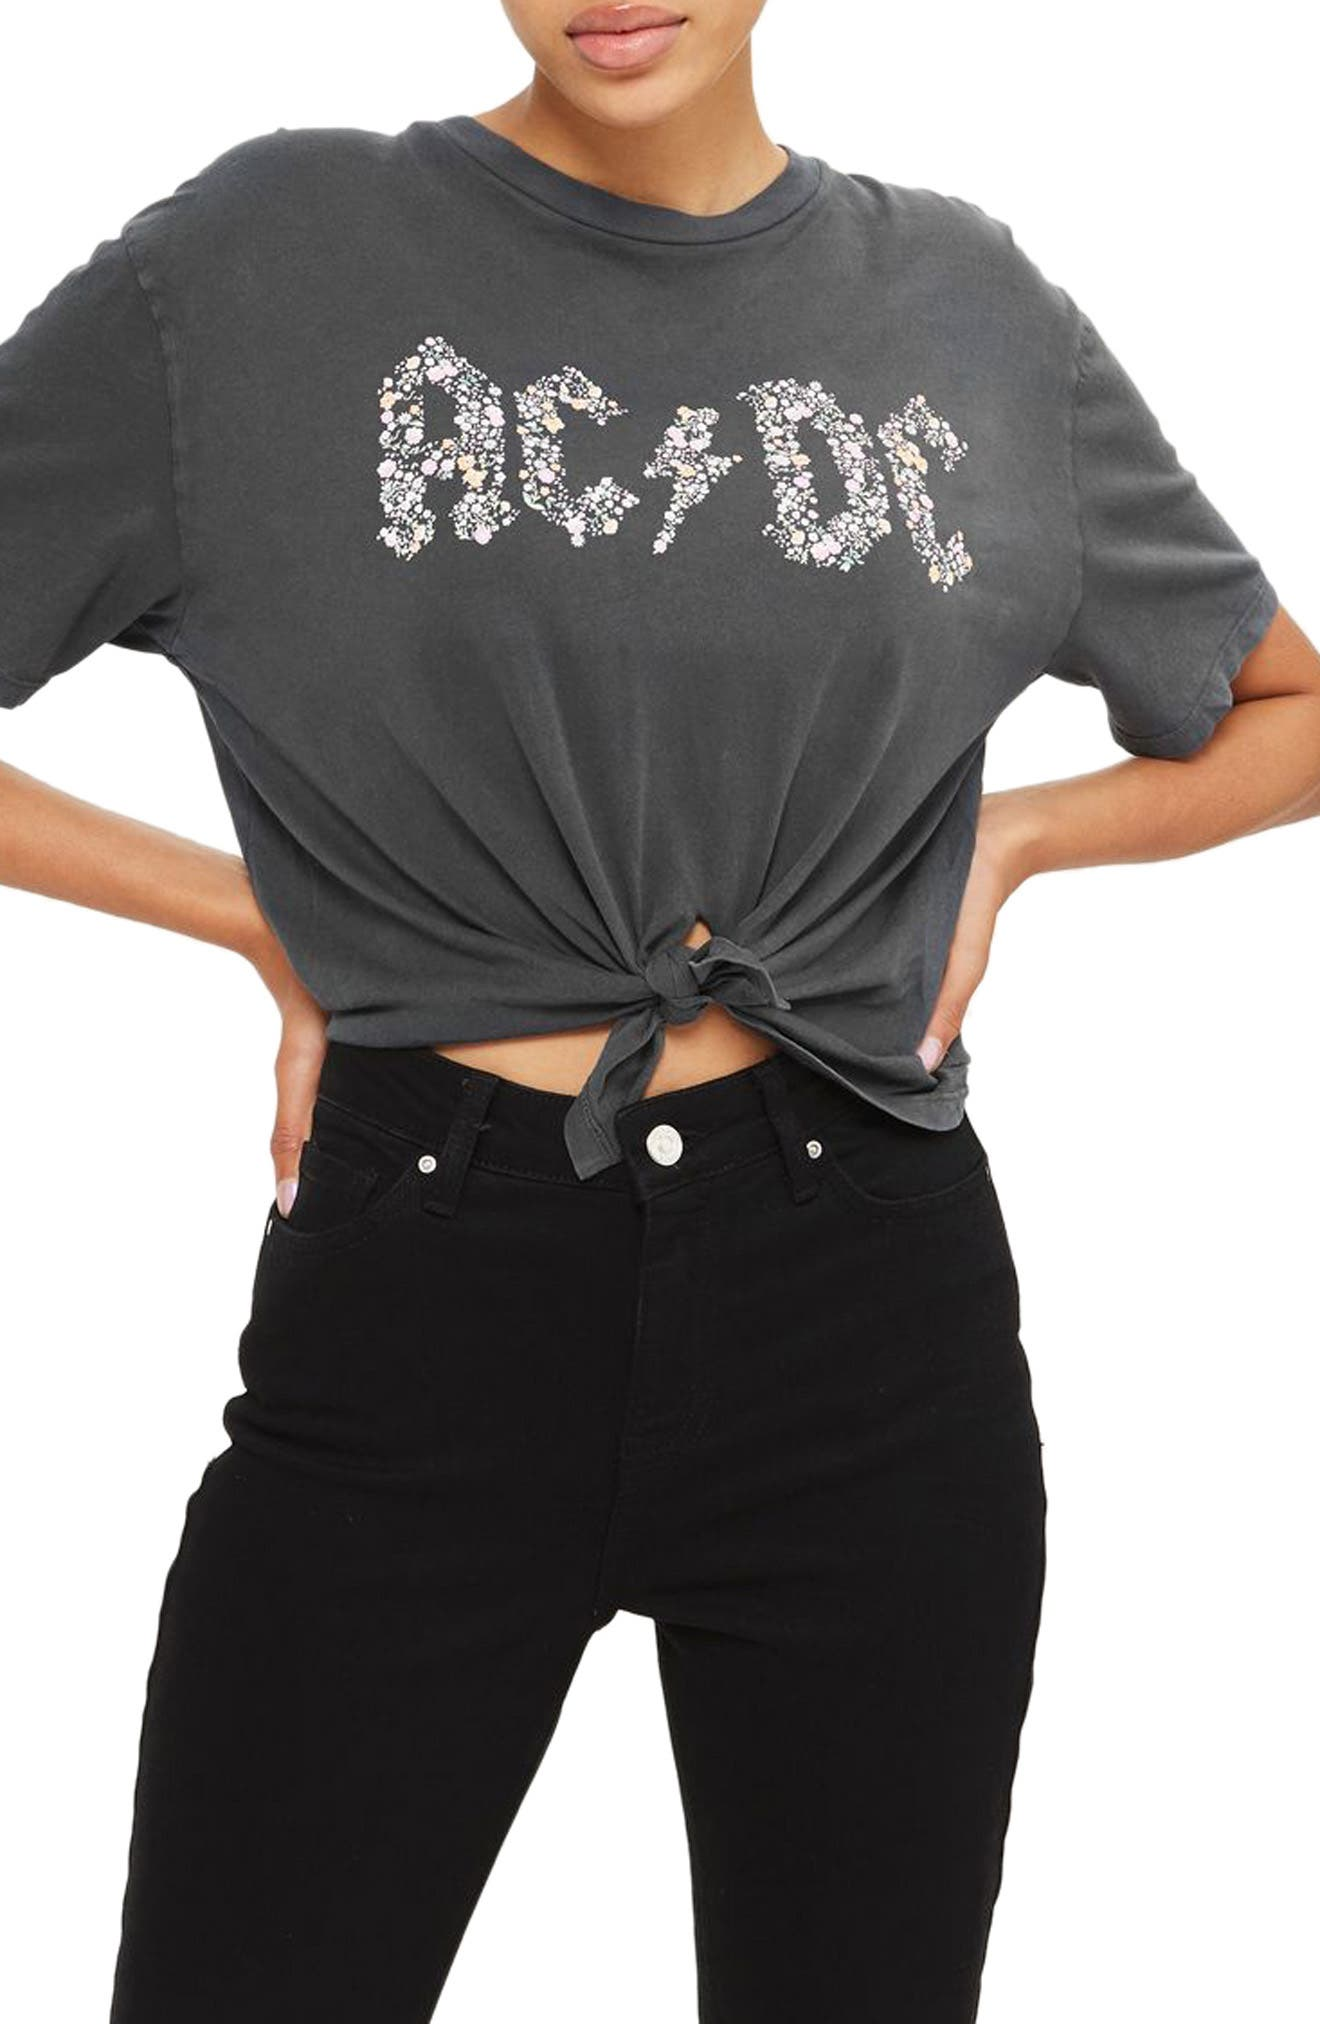 by And Finally Knot Crop AC/DC Tee,                             Main thumbnail 1, color,                             020